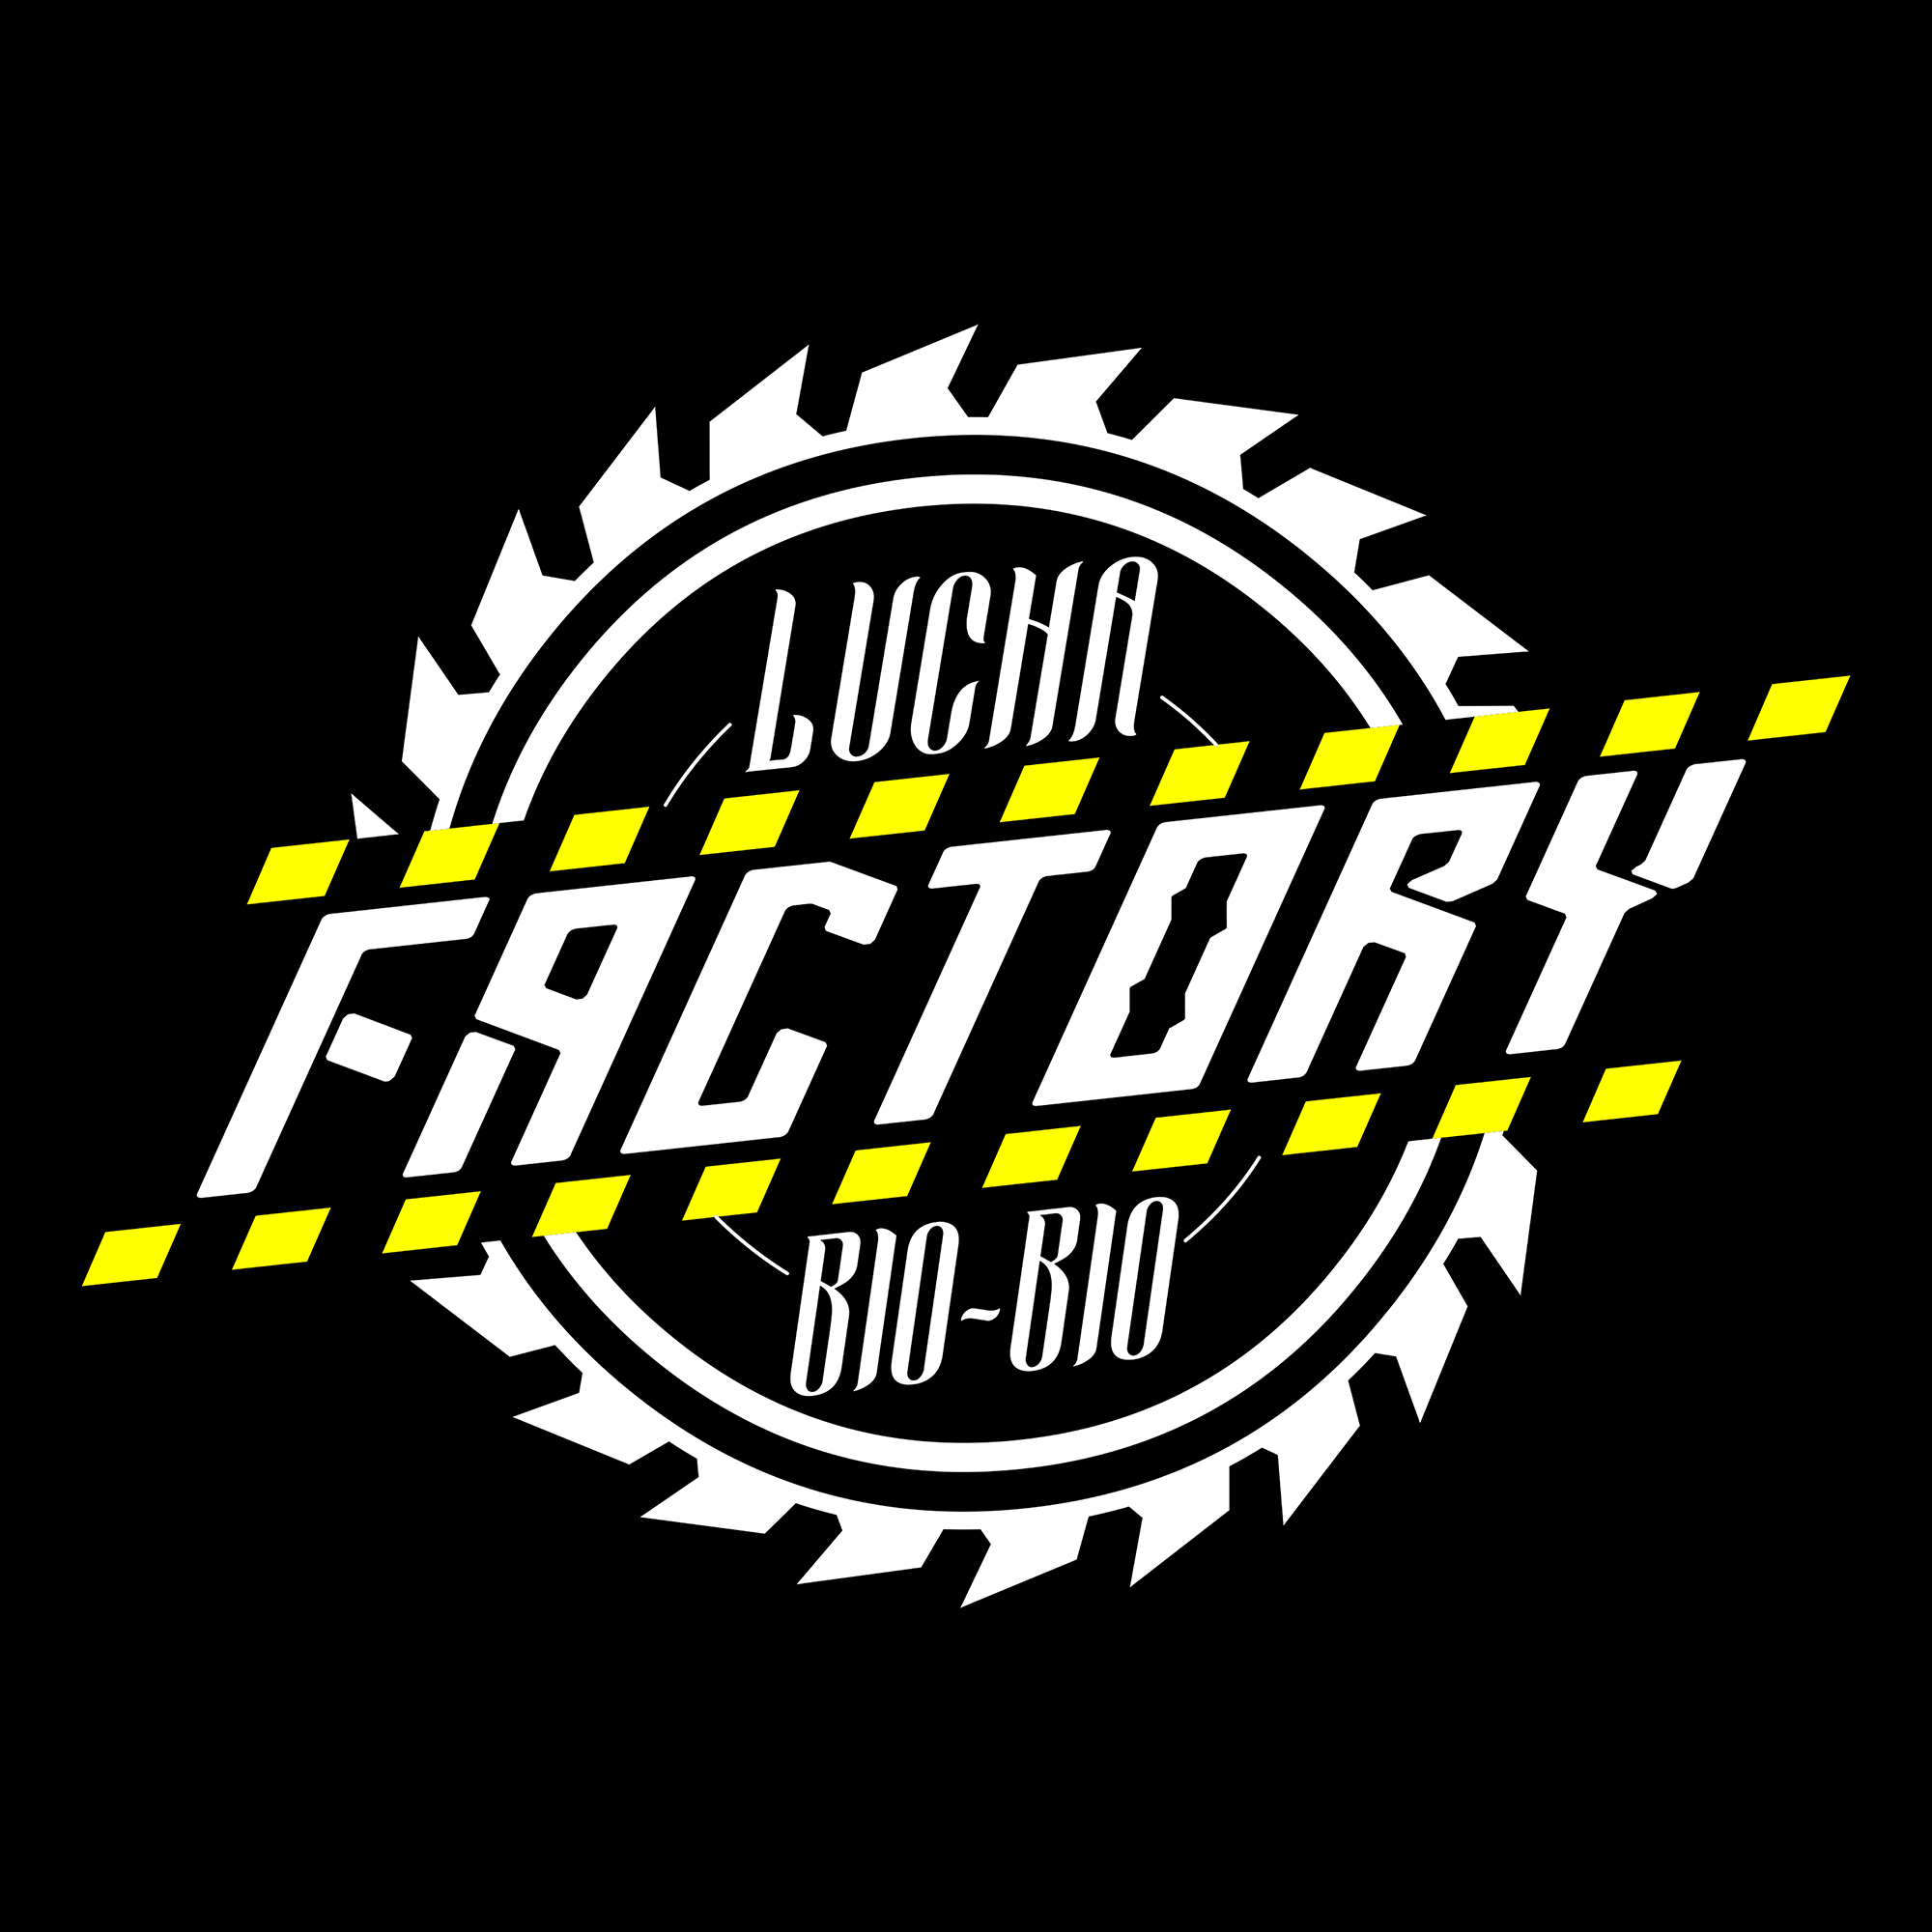 Lucha Factory